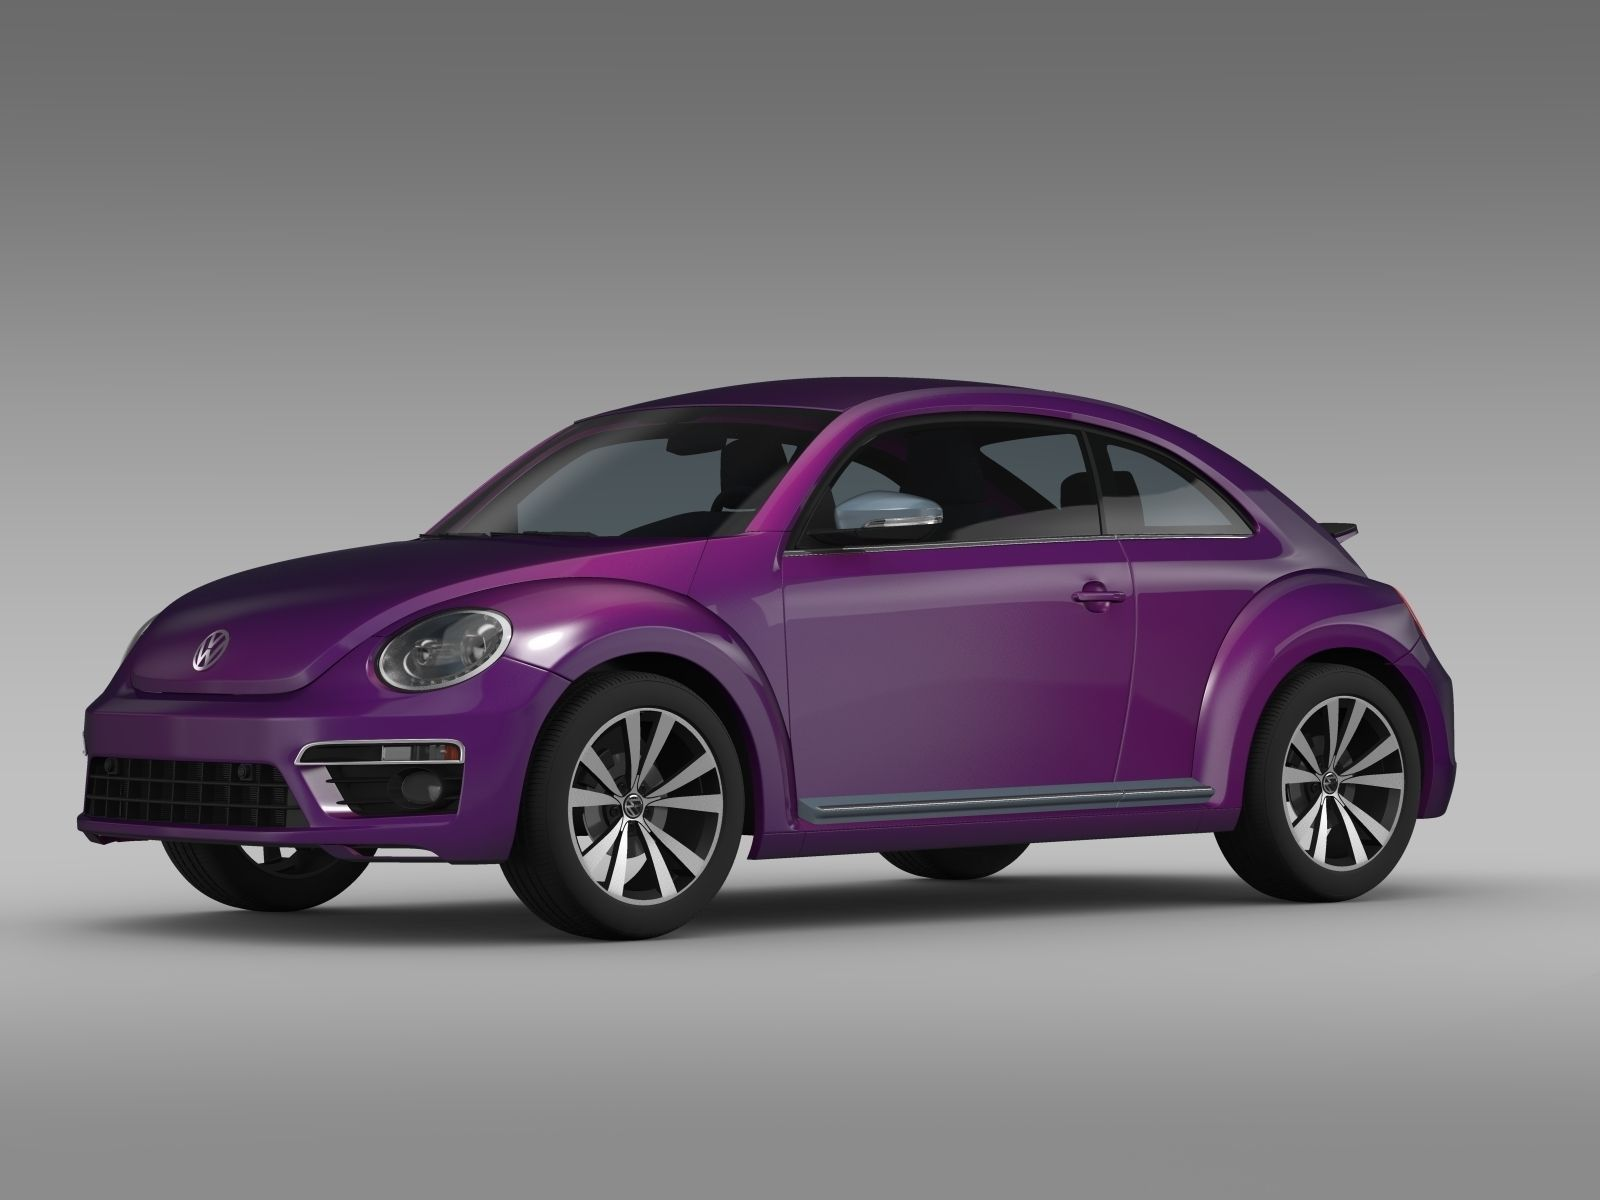 driving edition production special with for auto pre beetle pinkbeetle volkswagen tickled news model sale pink